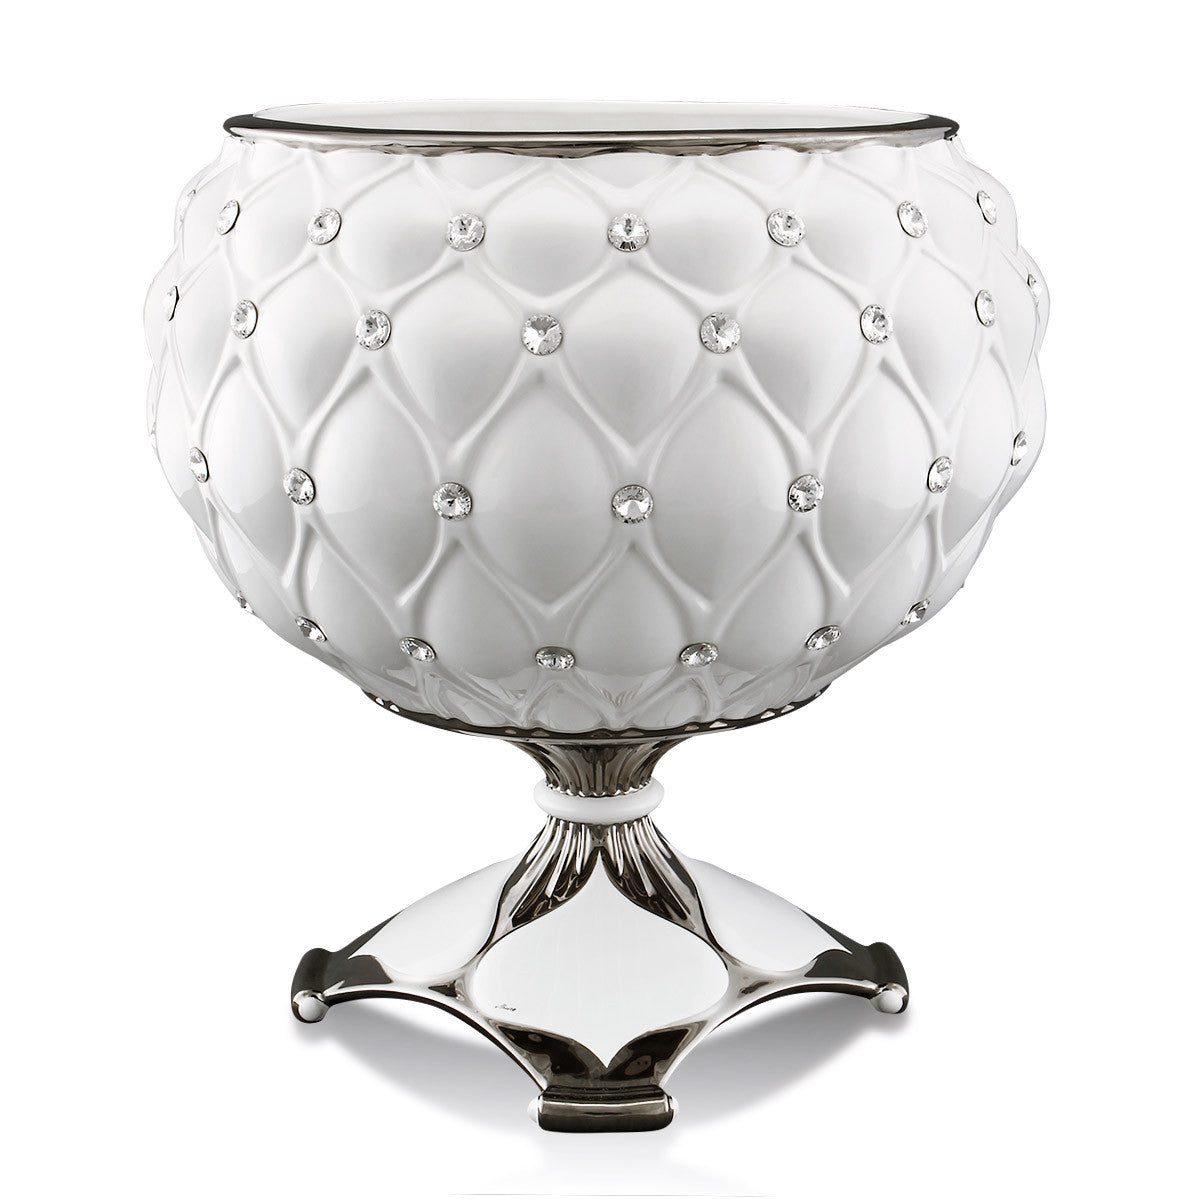 ceramic porcelain white big cup vase finished in platinum with Swarovski handmade in Italy